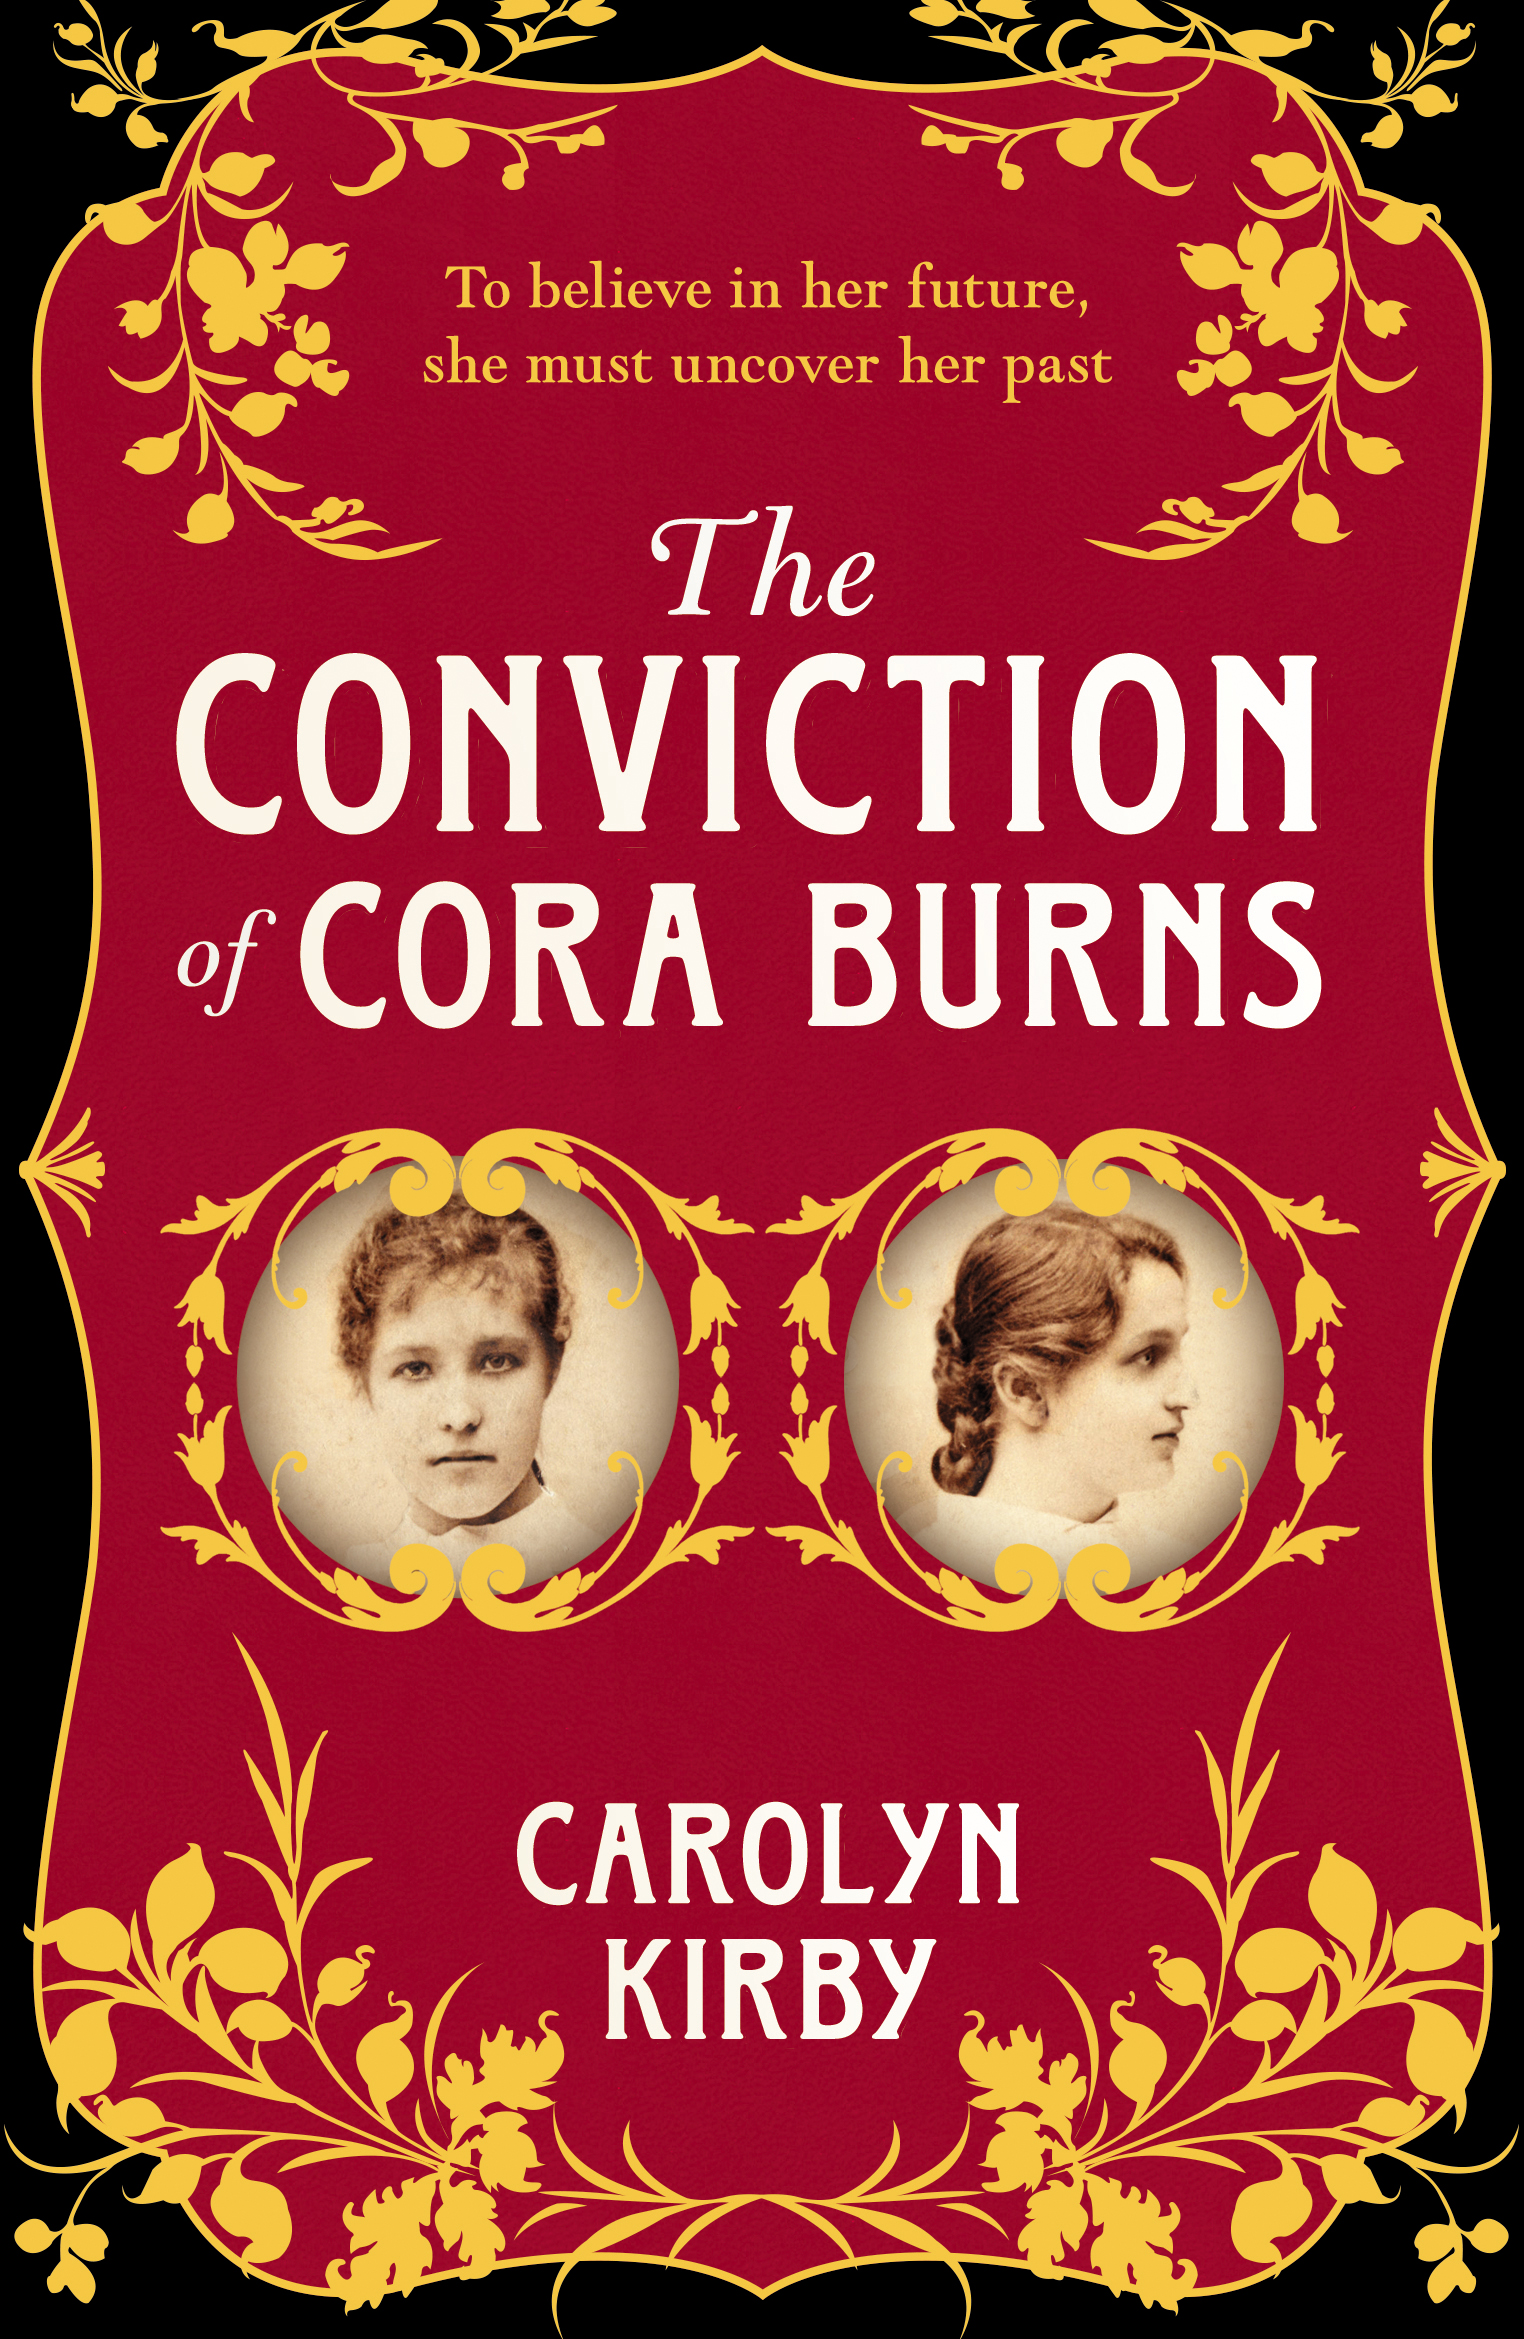 db333c079b4 The Conviction of Cora Burns by Carolyn Kirby - Crime Time